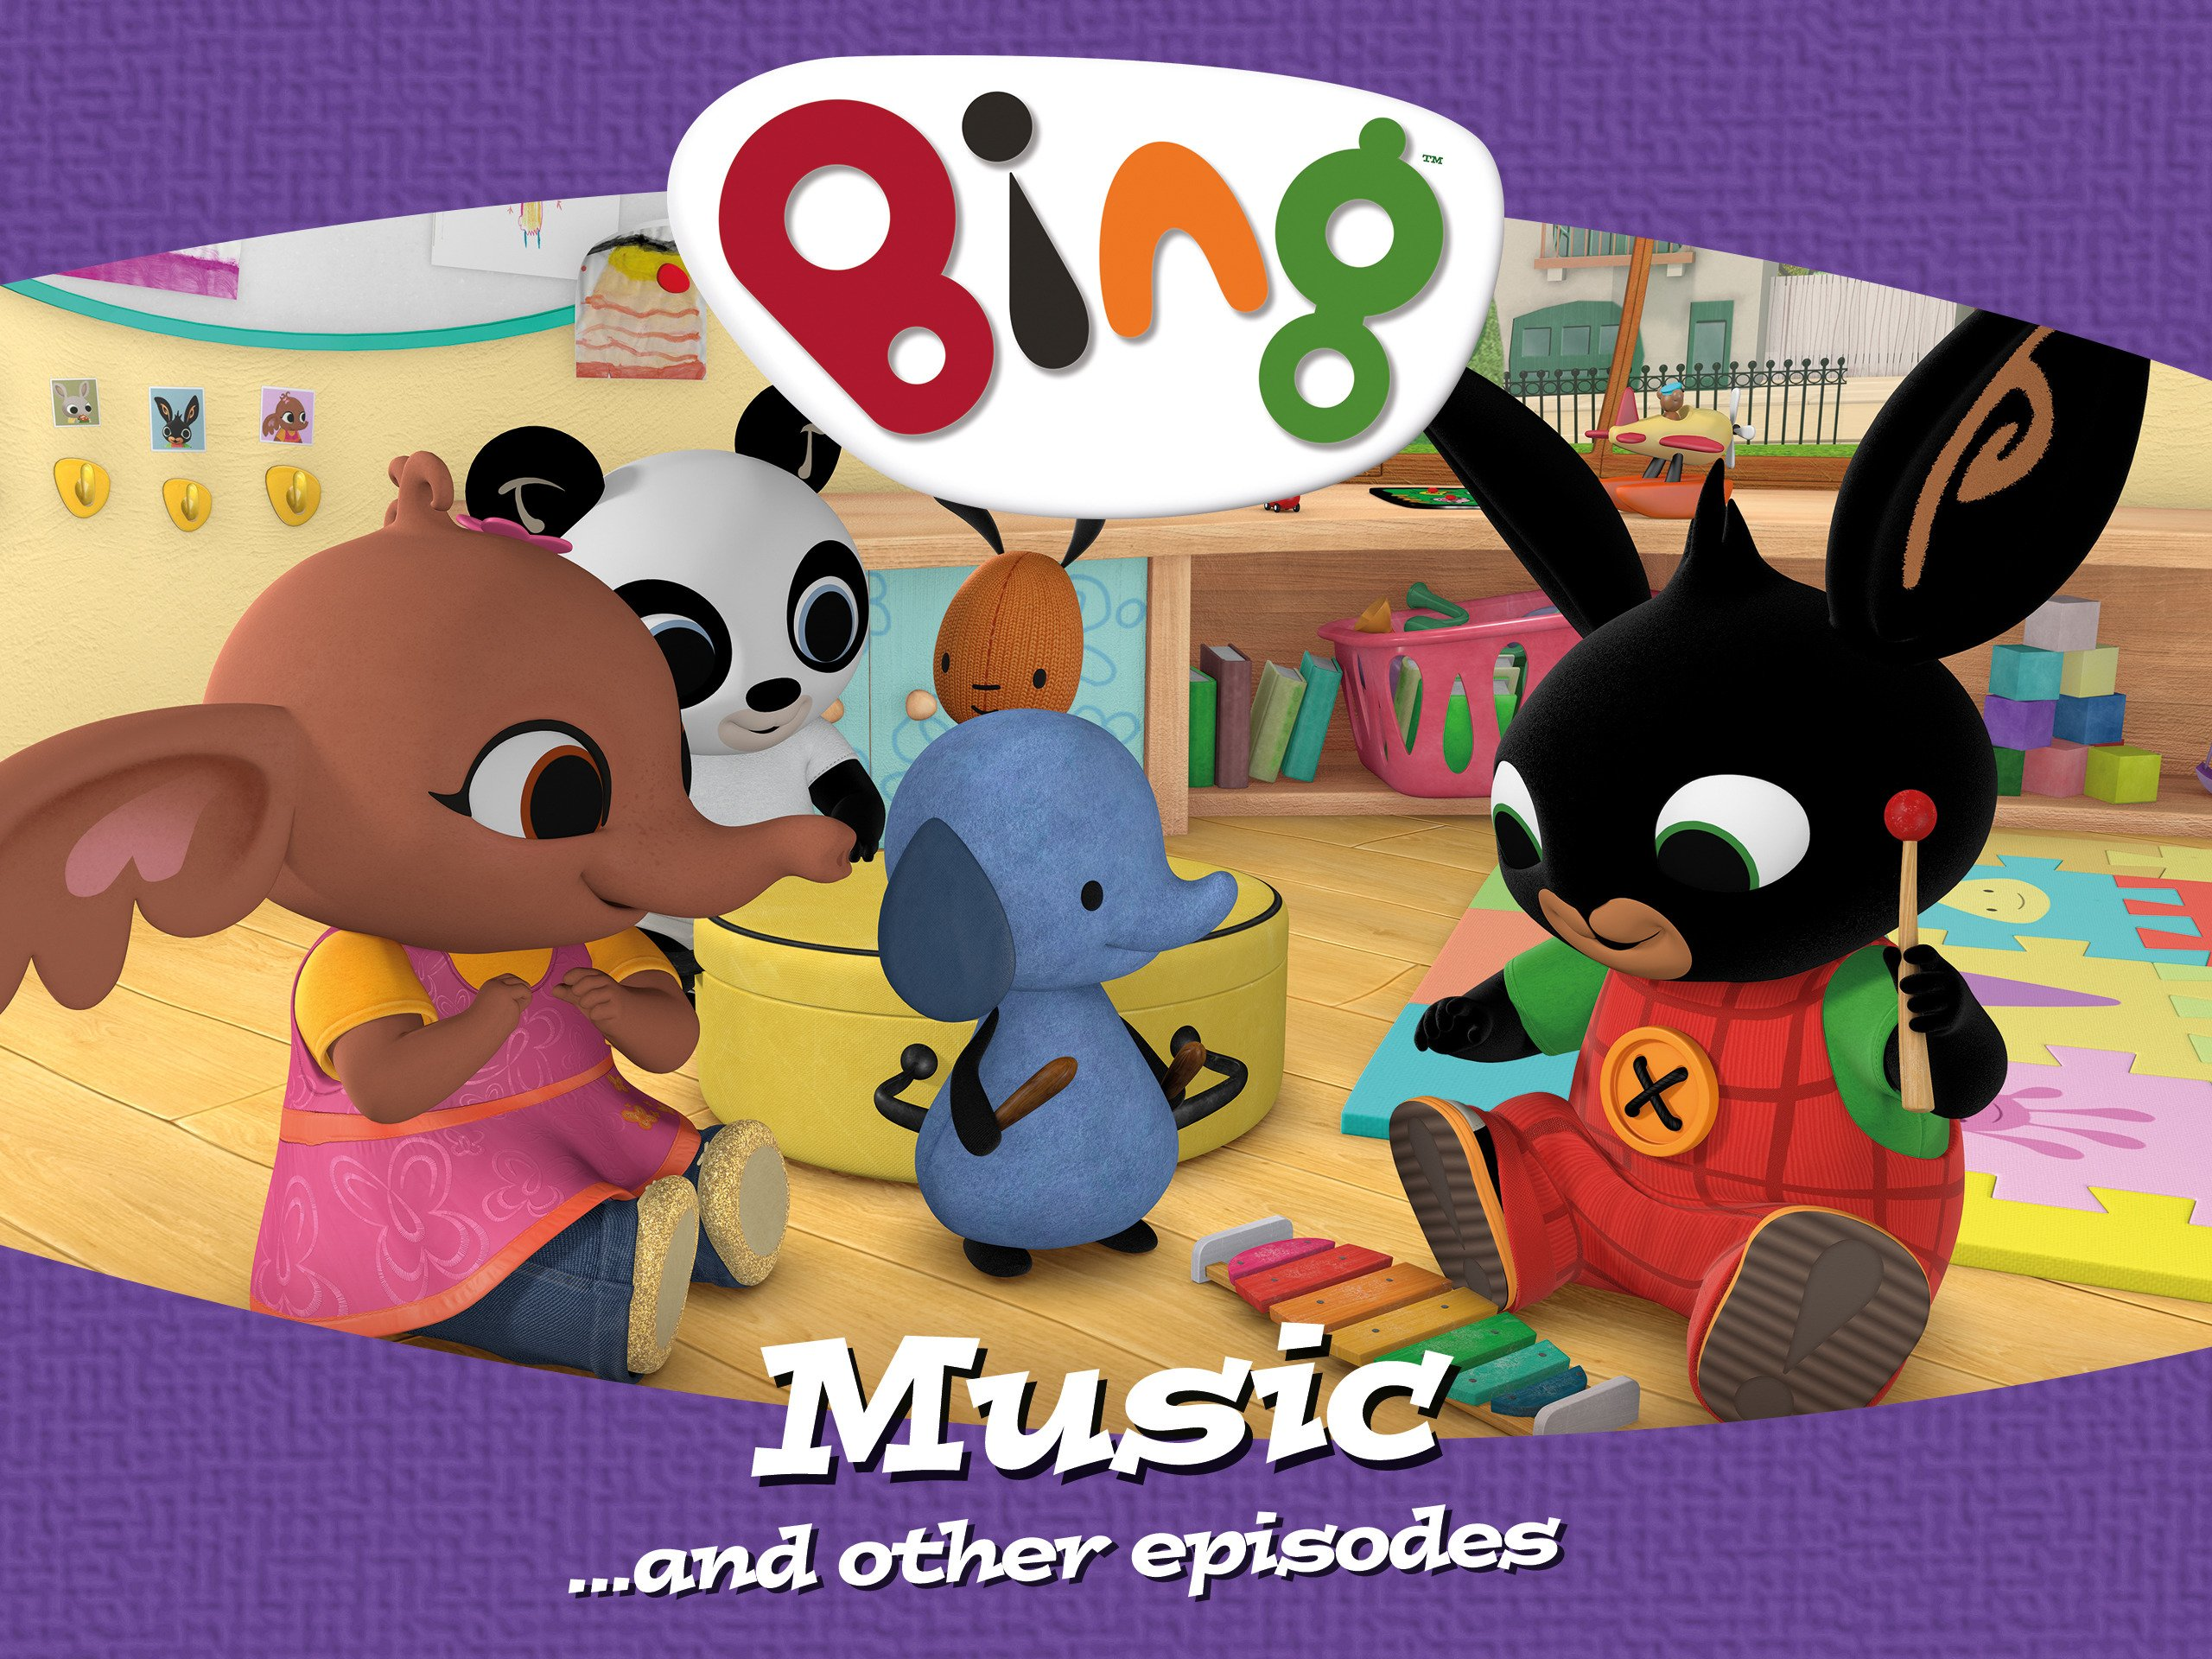 Bing Music & Other Episodes - Season 6